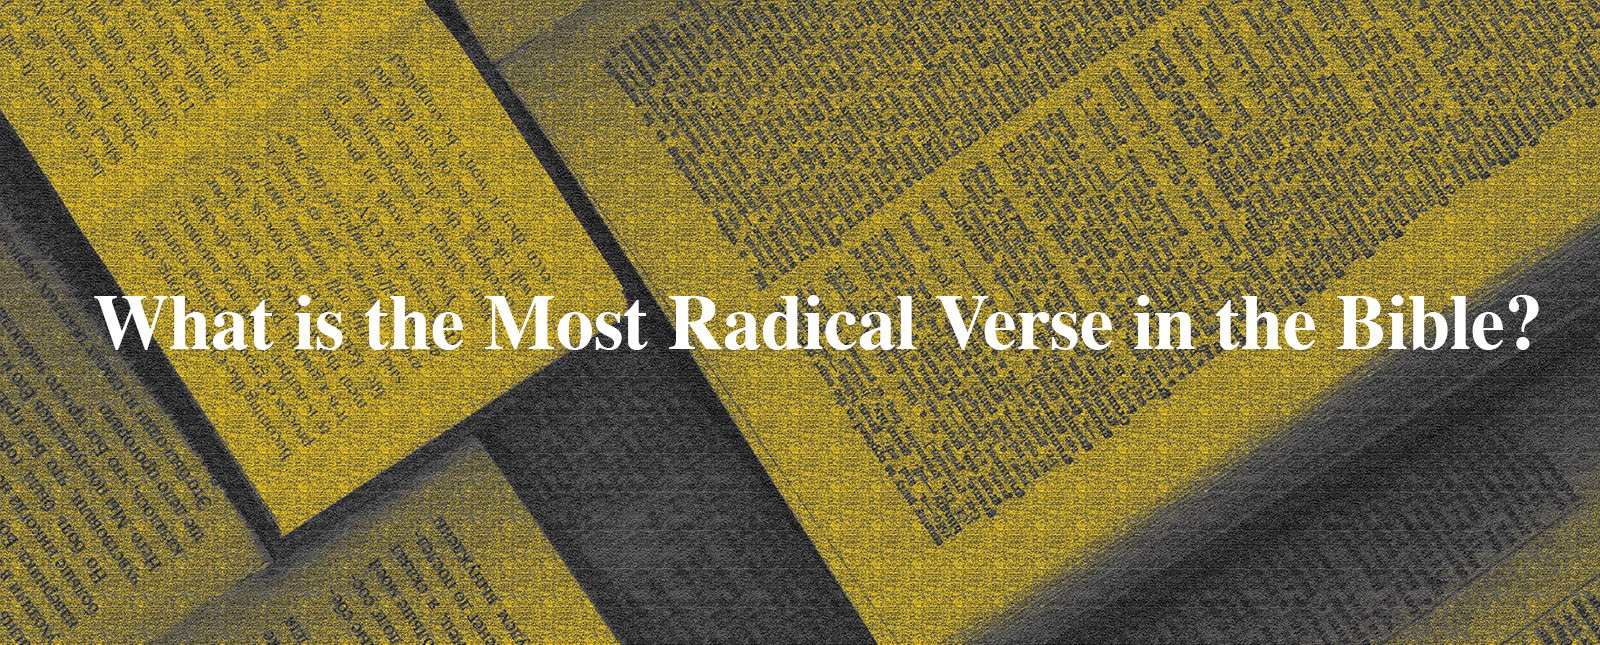 King Ministries International: What Is The Most Radical